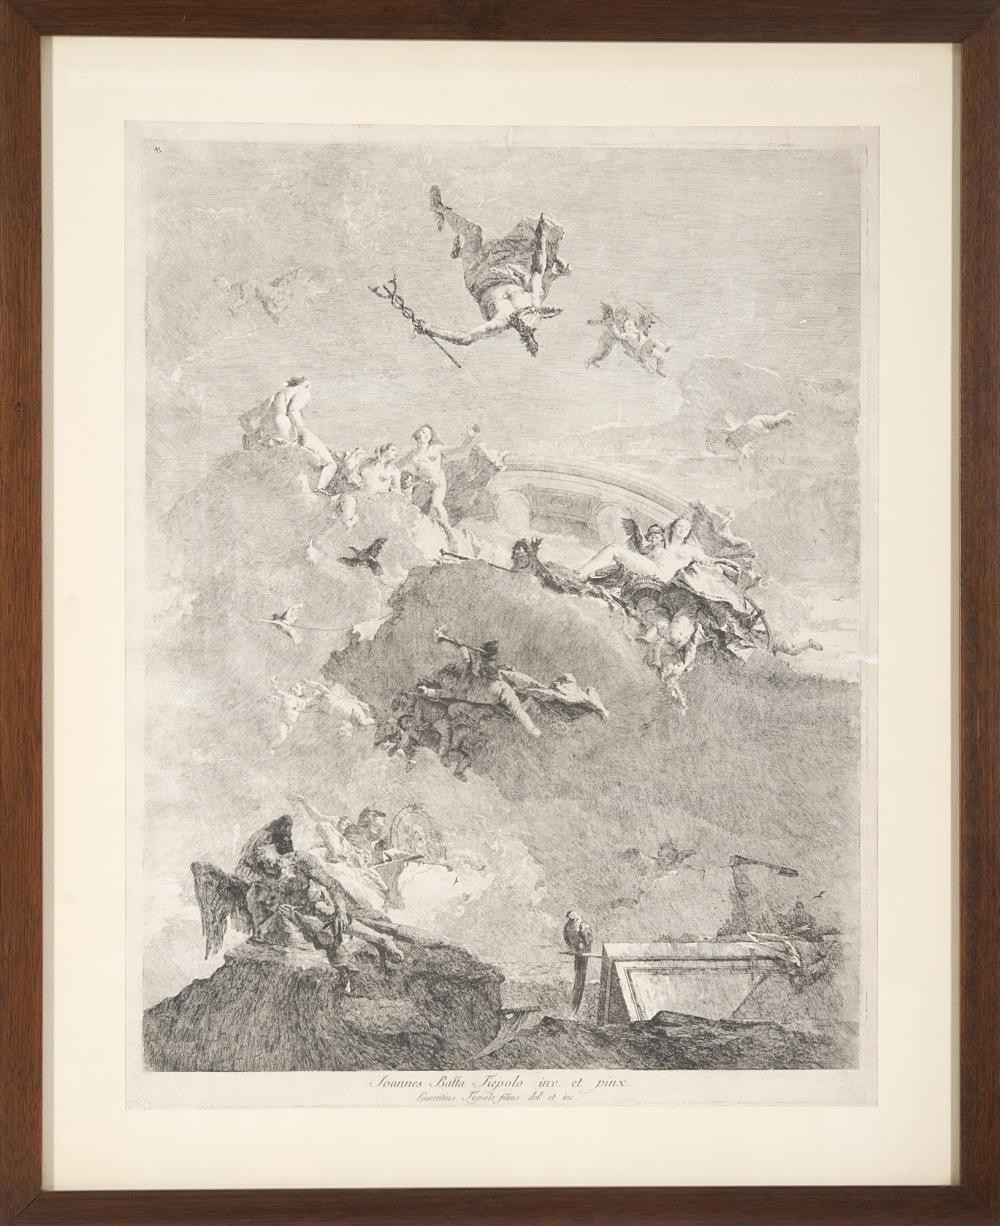 Lorenzo Tiepolo The triumph of Venus, after Giovanni Battista Tiepolo Etching, third state of three, 670x510 mm. Framed (defects)...